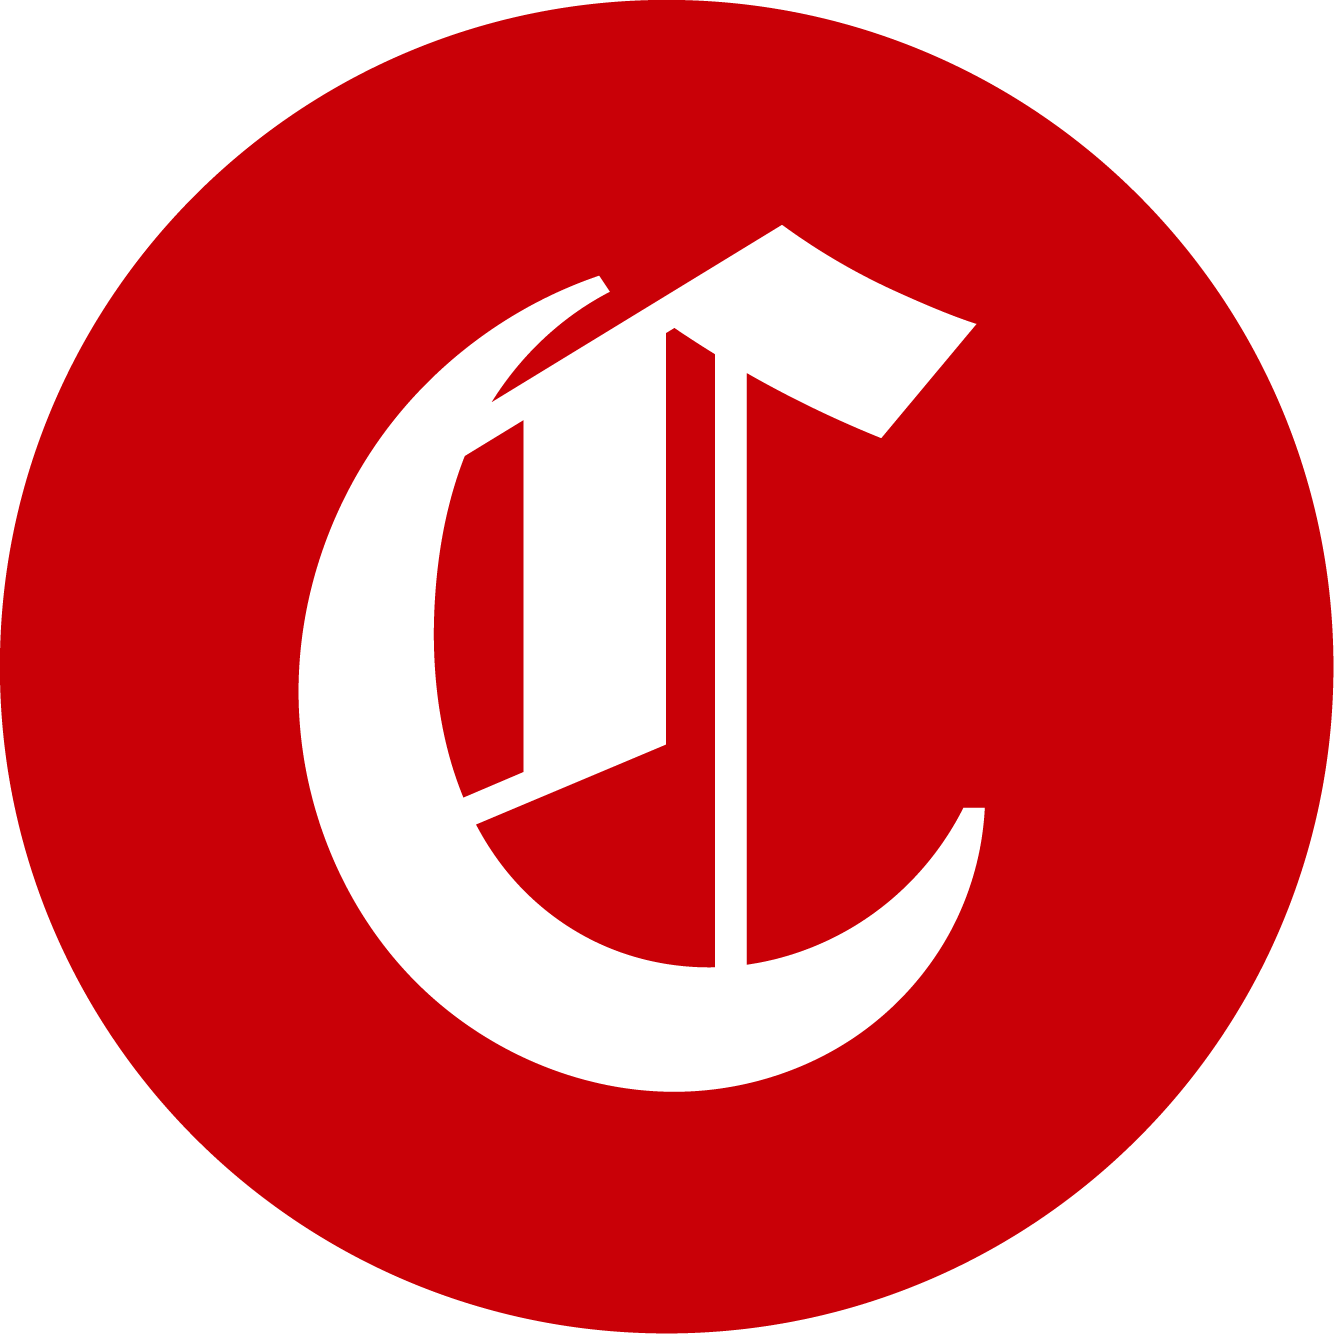 Online Edition of The Cardinal Times